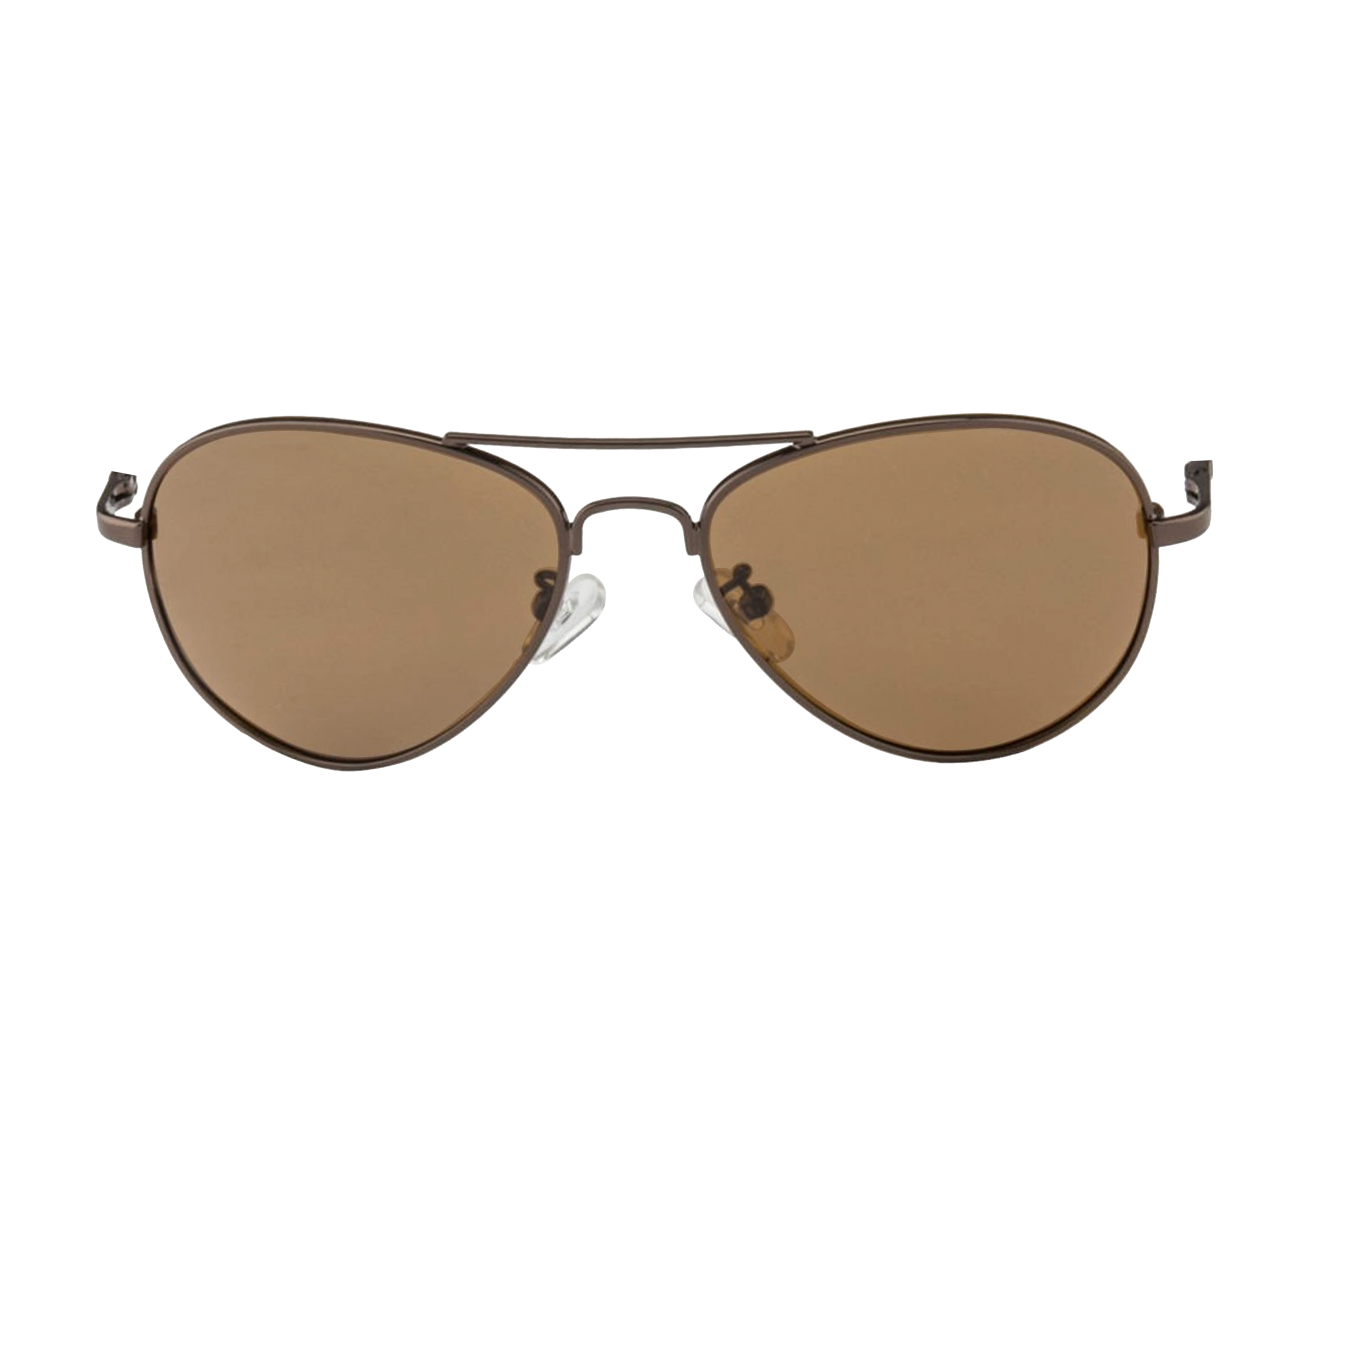 1350x1350 Displaying 20gt Images For Aviator Sunglasses Png